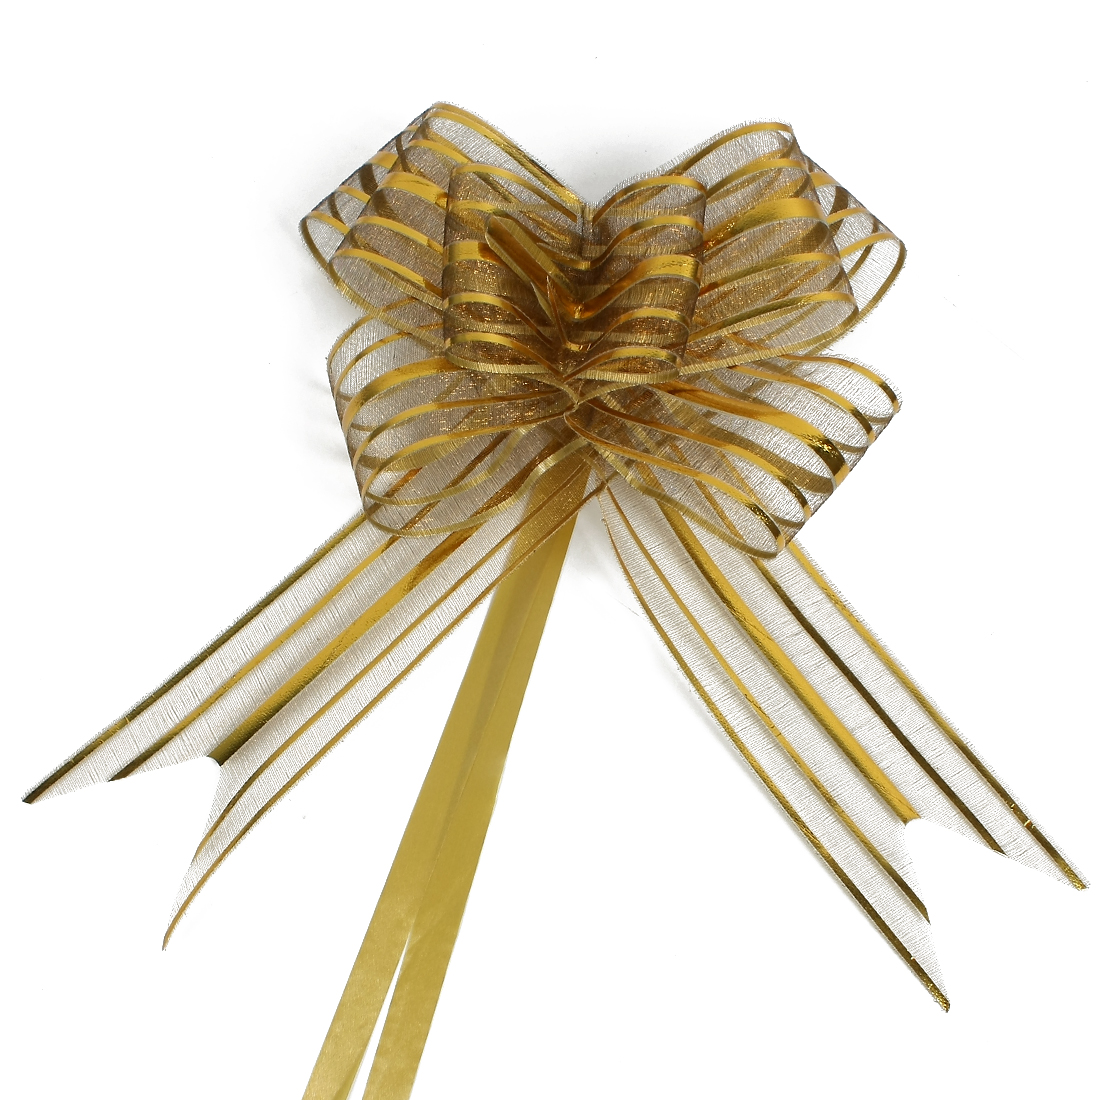 Wedding Party Gift Wrapping Ribbon Pull Bows Decoration Gold Tone 5cm Width 10pcs